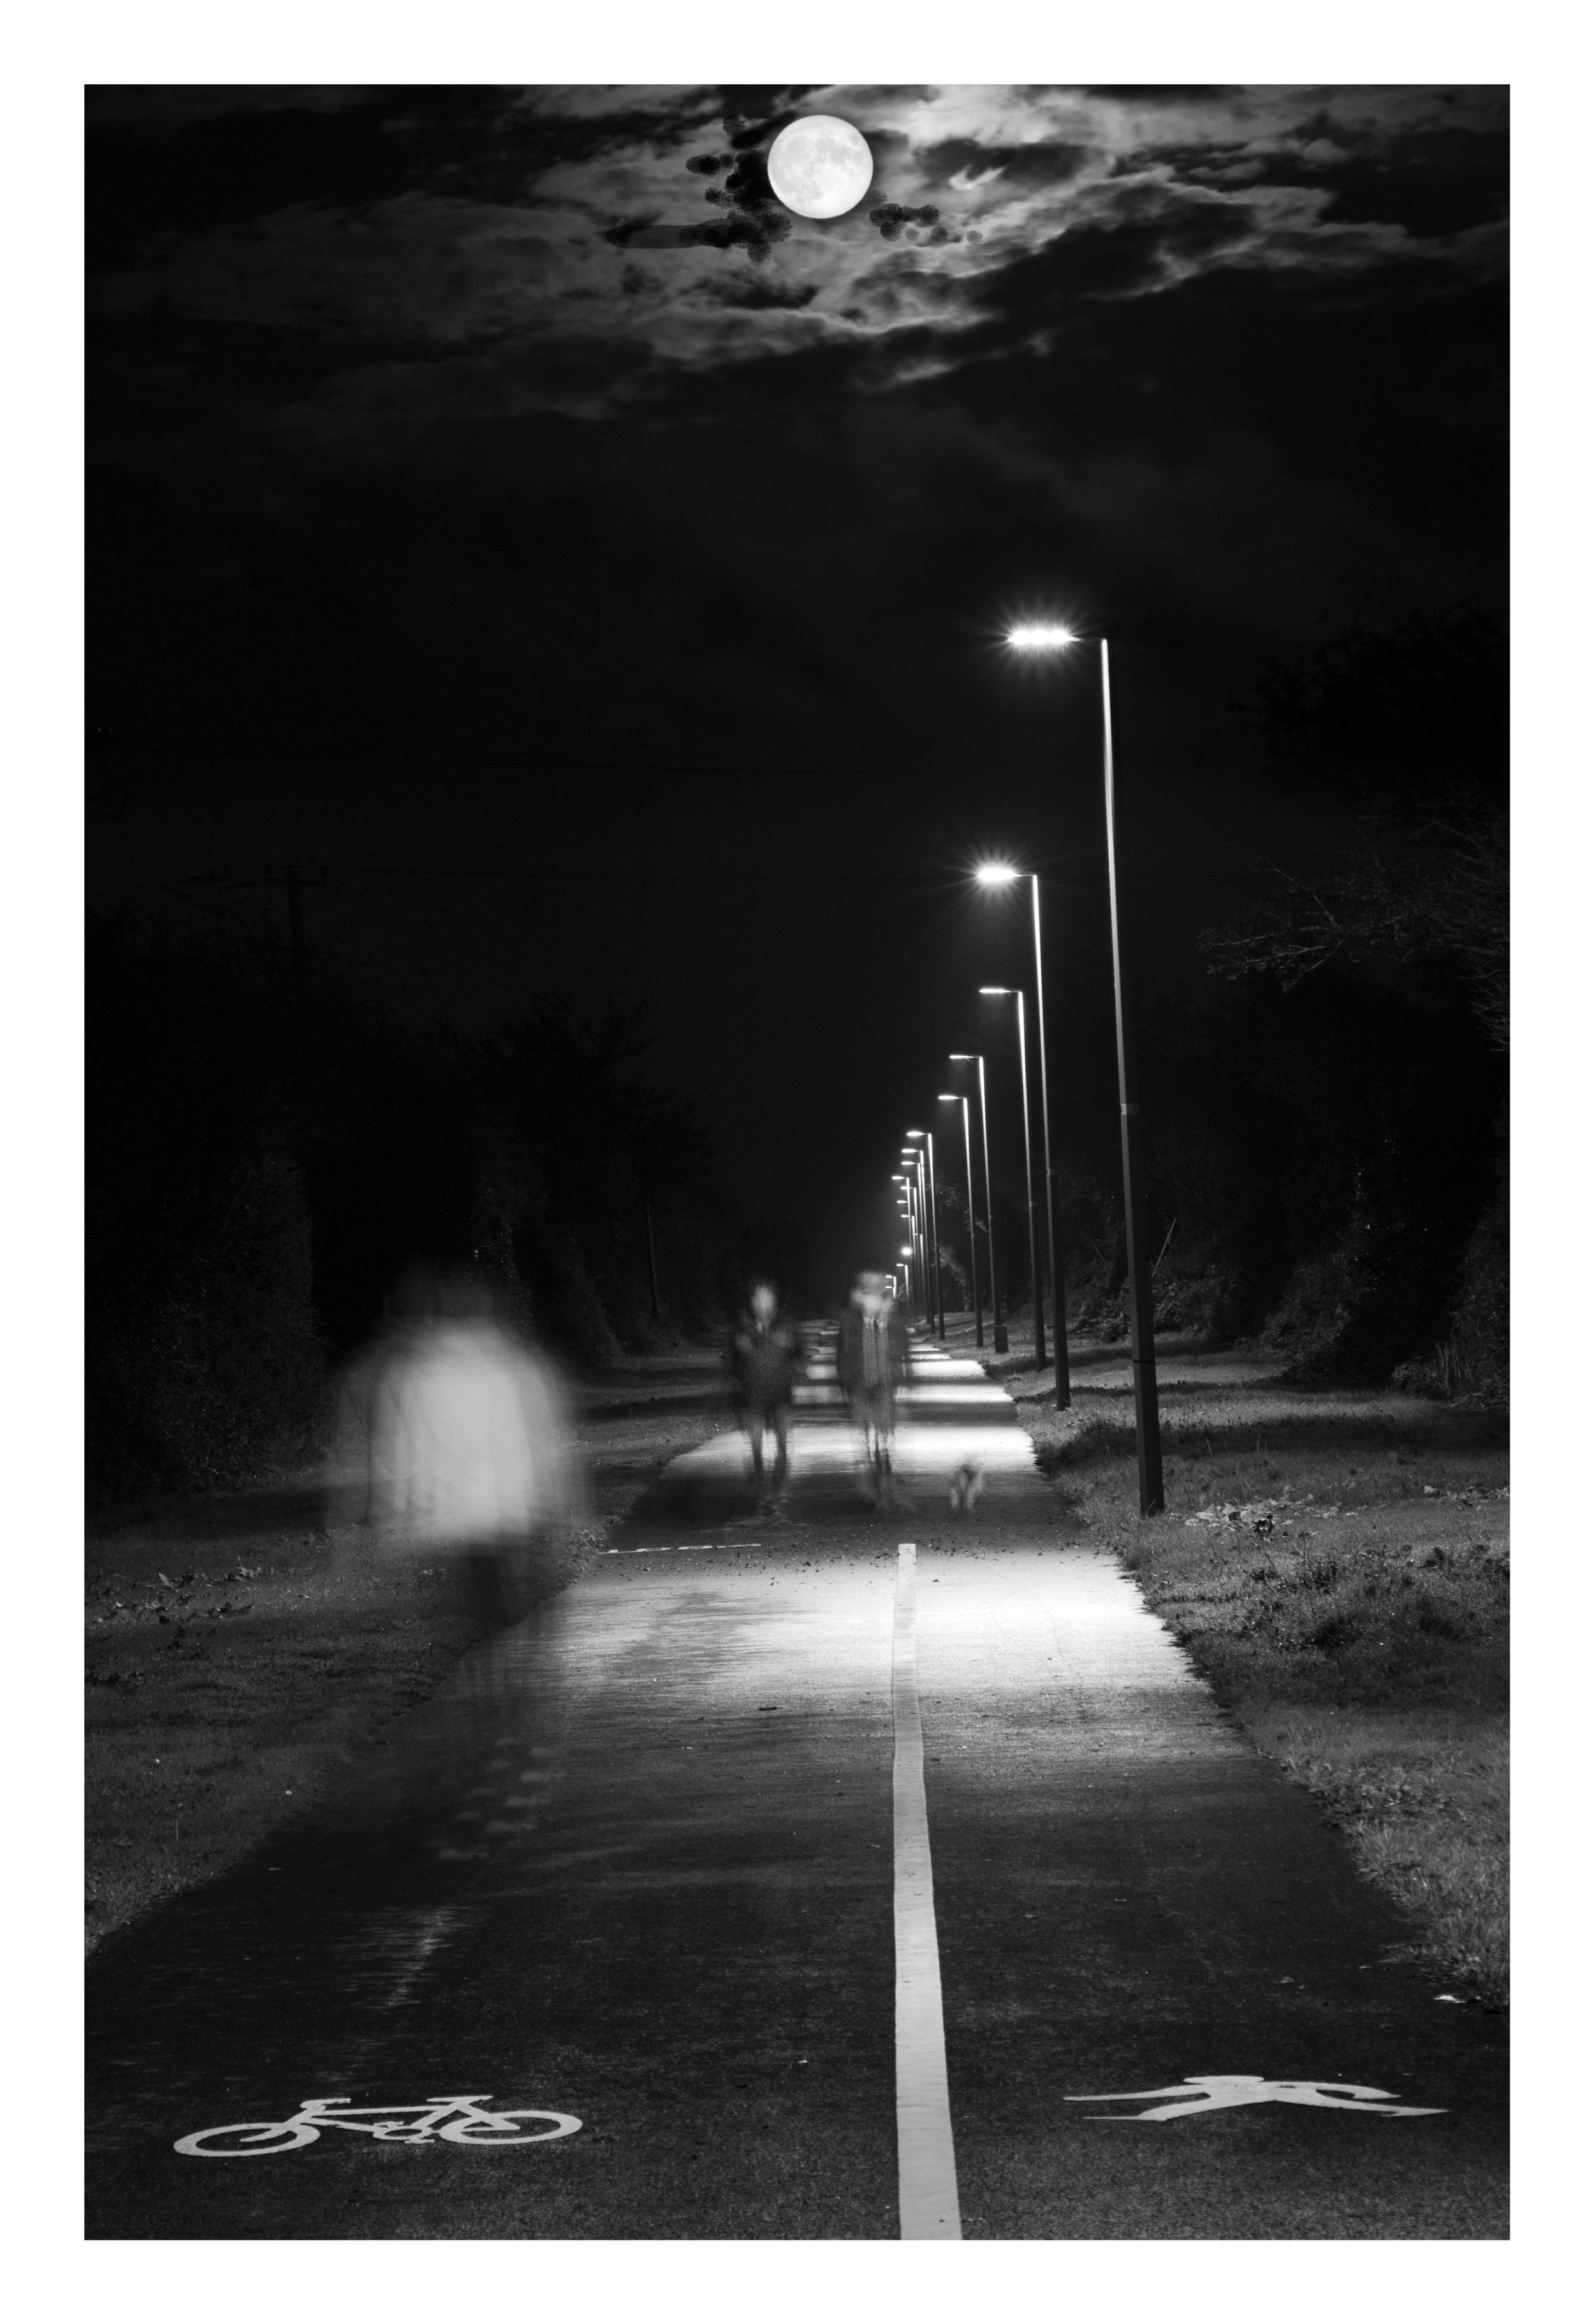 Waterford Greenway under moon light